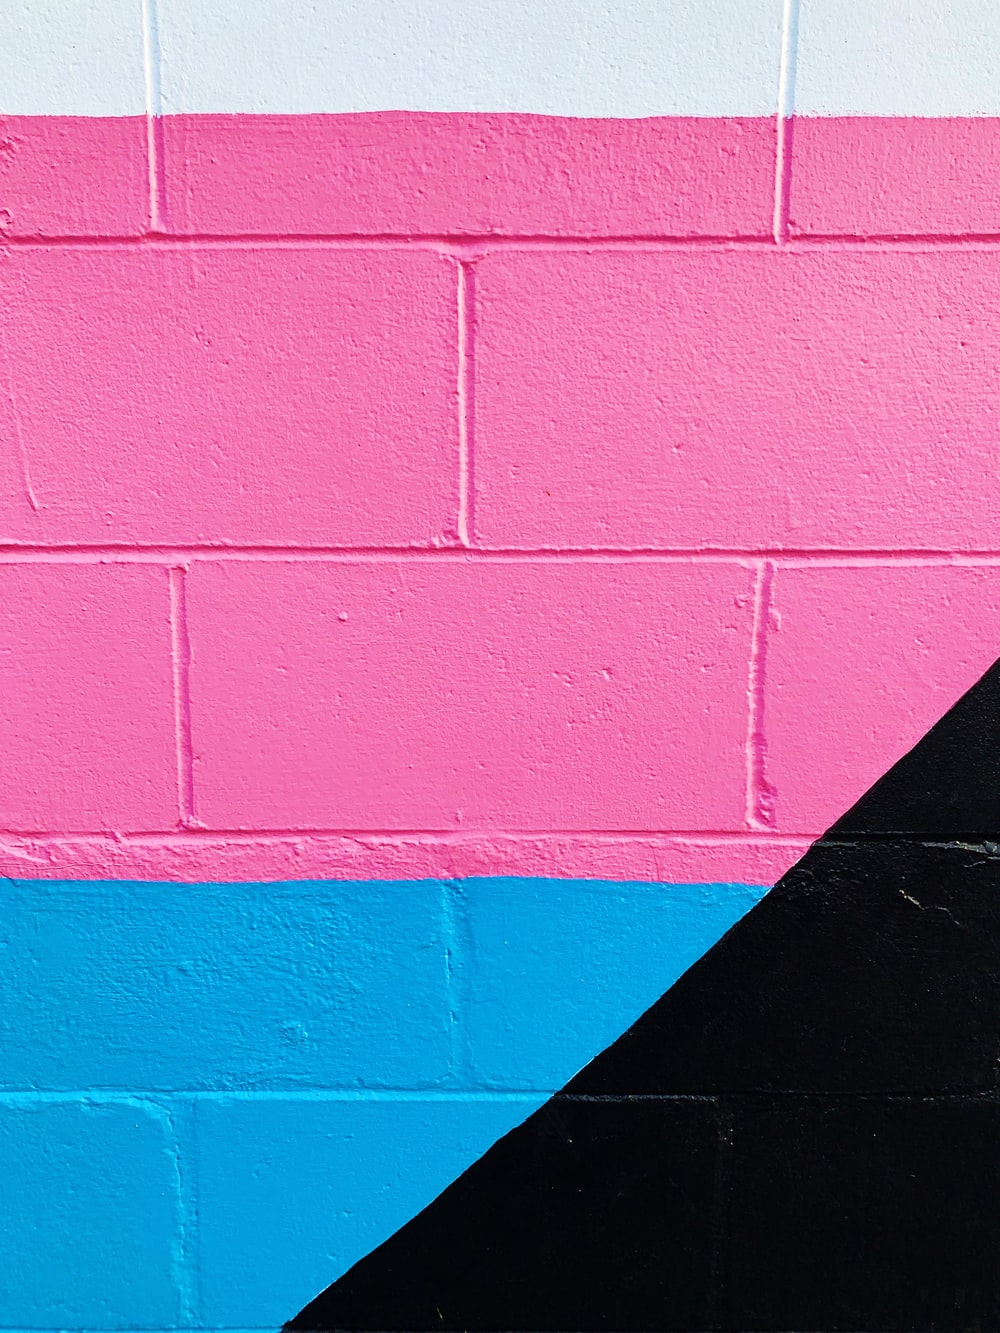 pink and blue painted wall